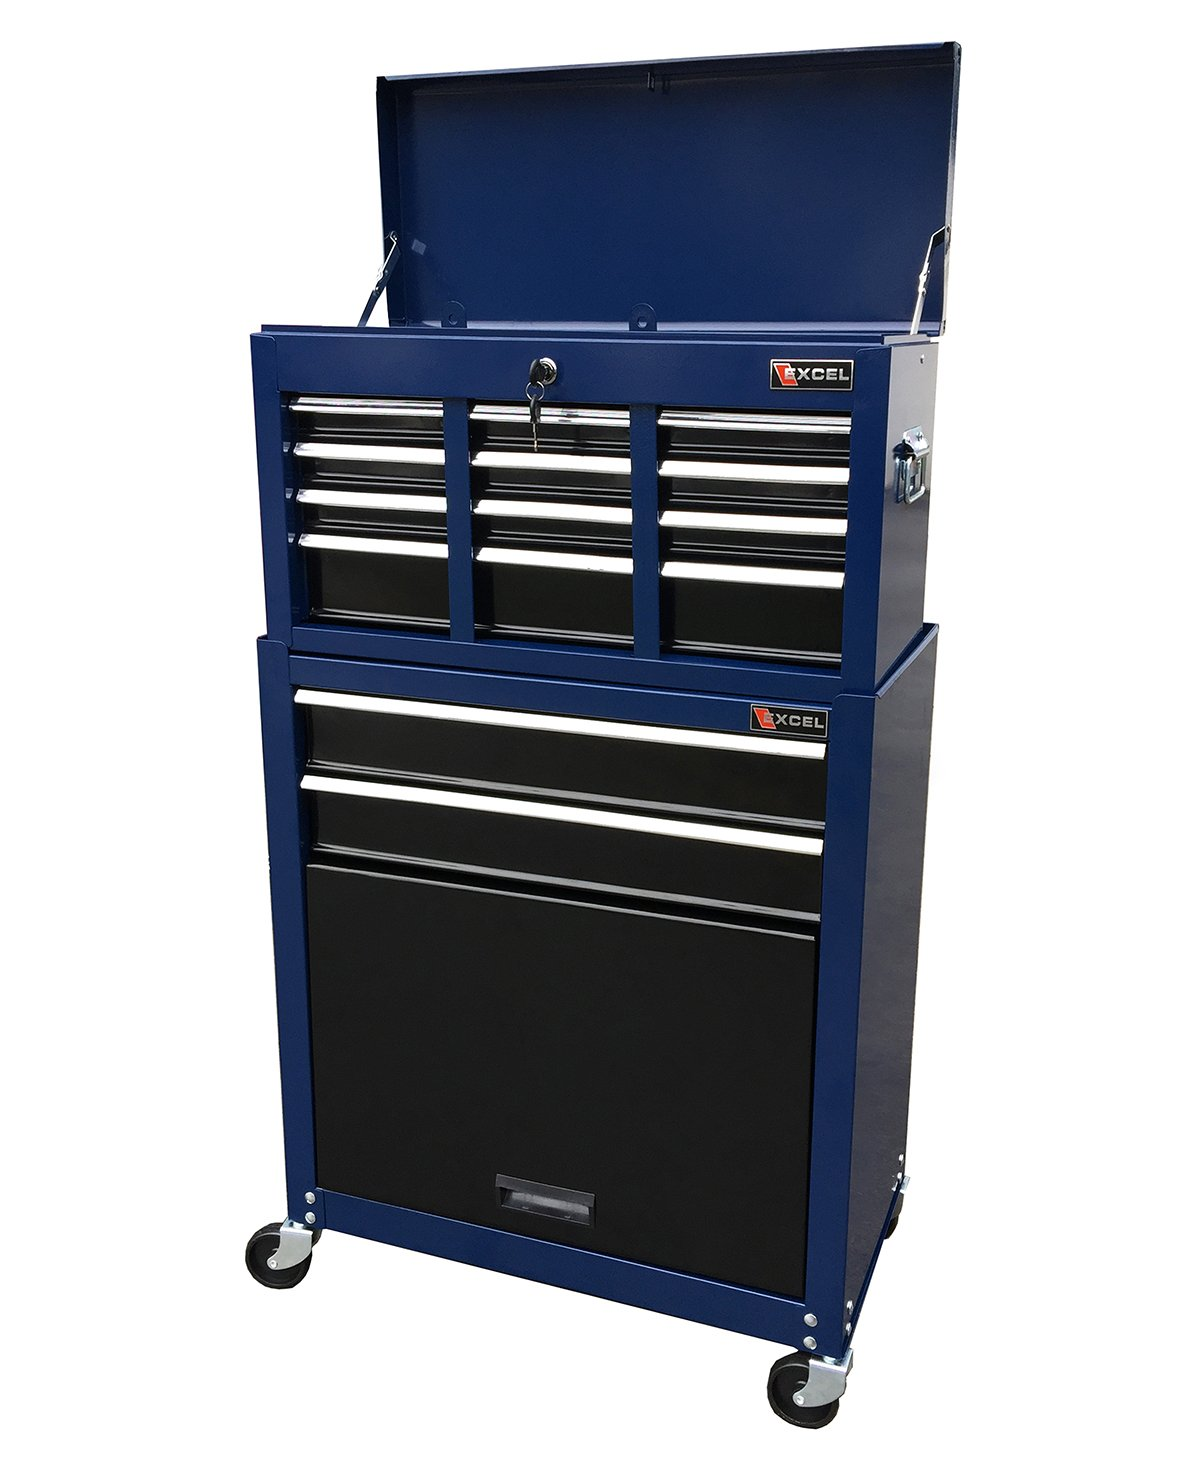 Amazon.com: Excel TB220X-AB-Blue 8- Drawer Chest and Roller ...